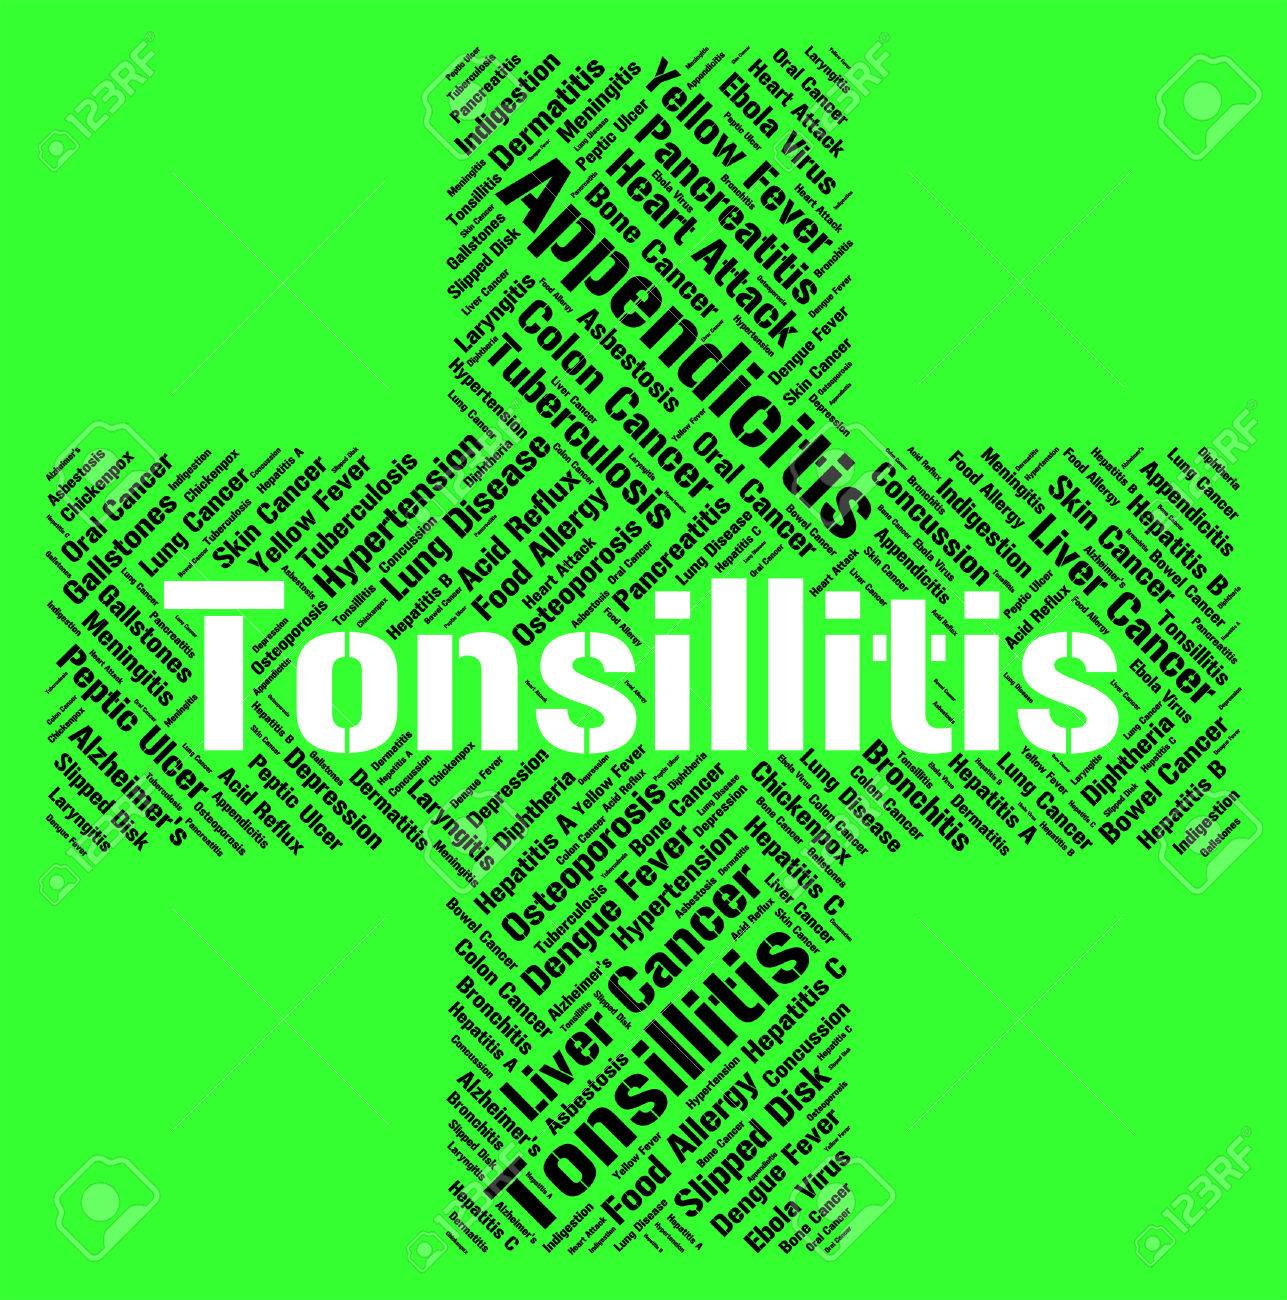 Tonsillitis Word Meaning Strep Throat And Sickness